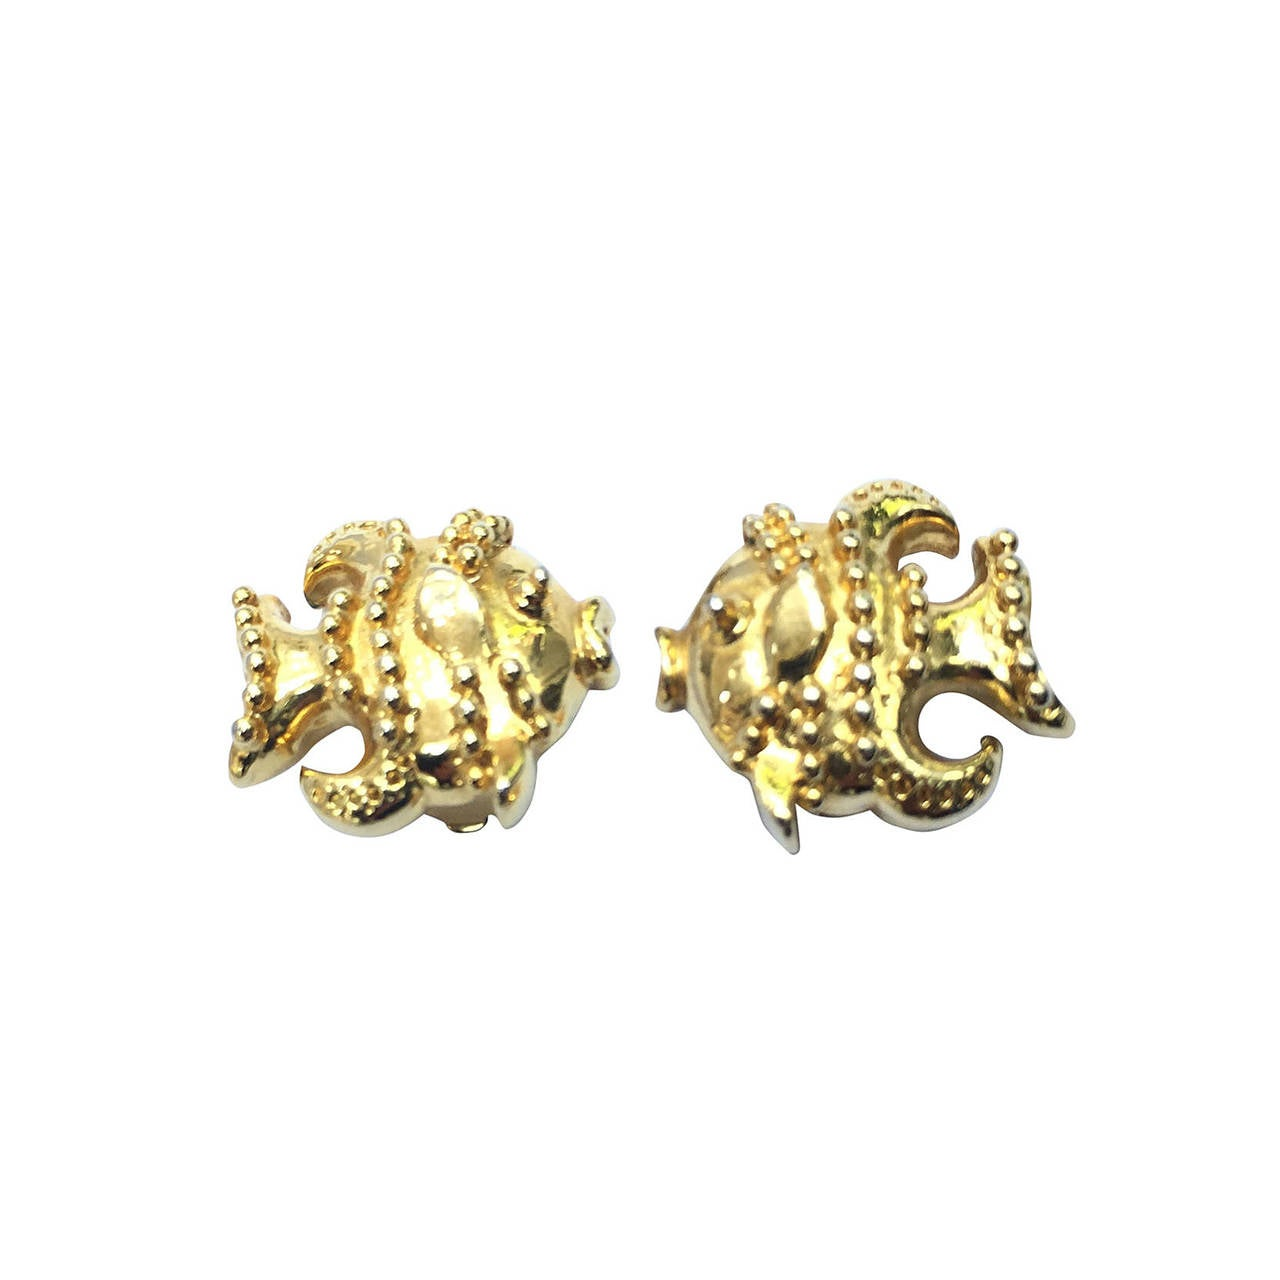 Gianni Versace gold fish clip-on earrings. For Sale